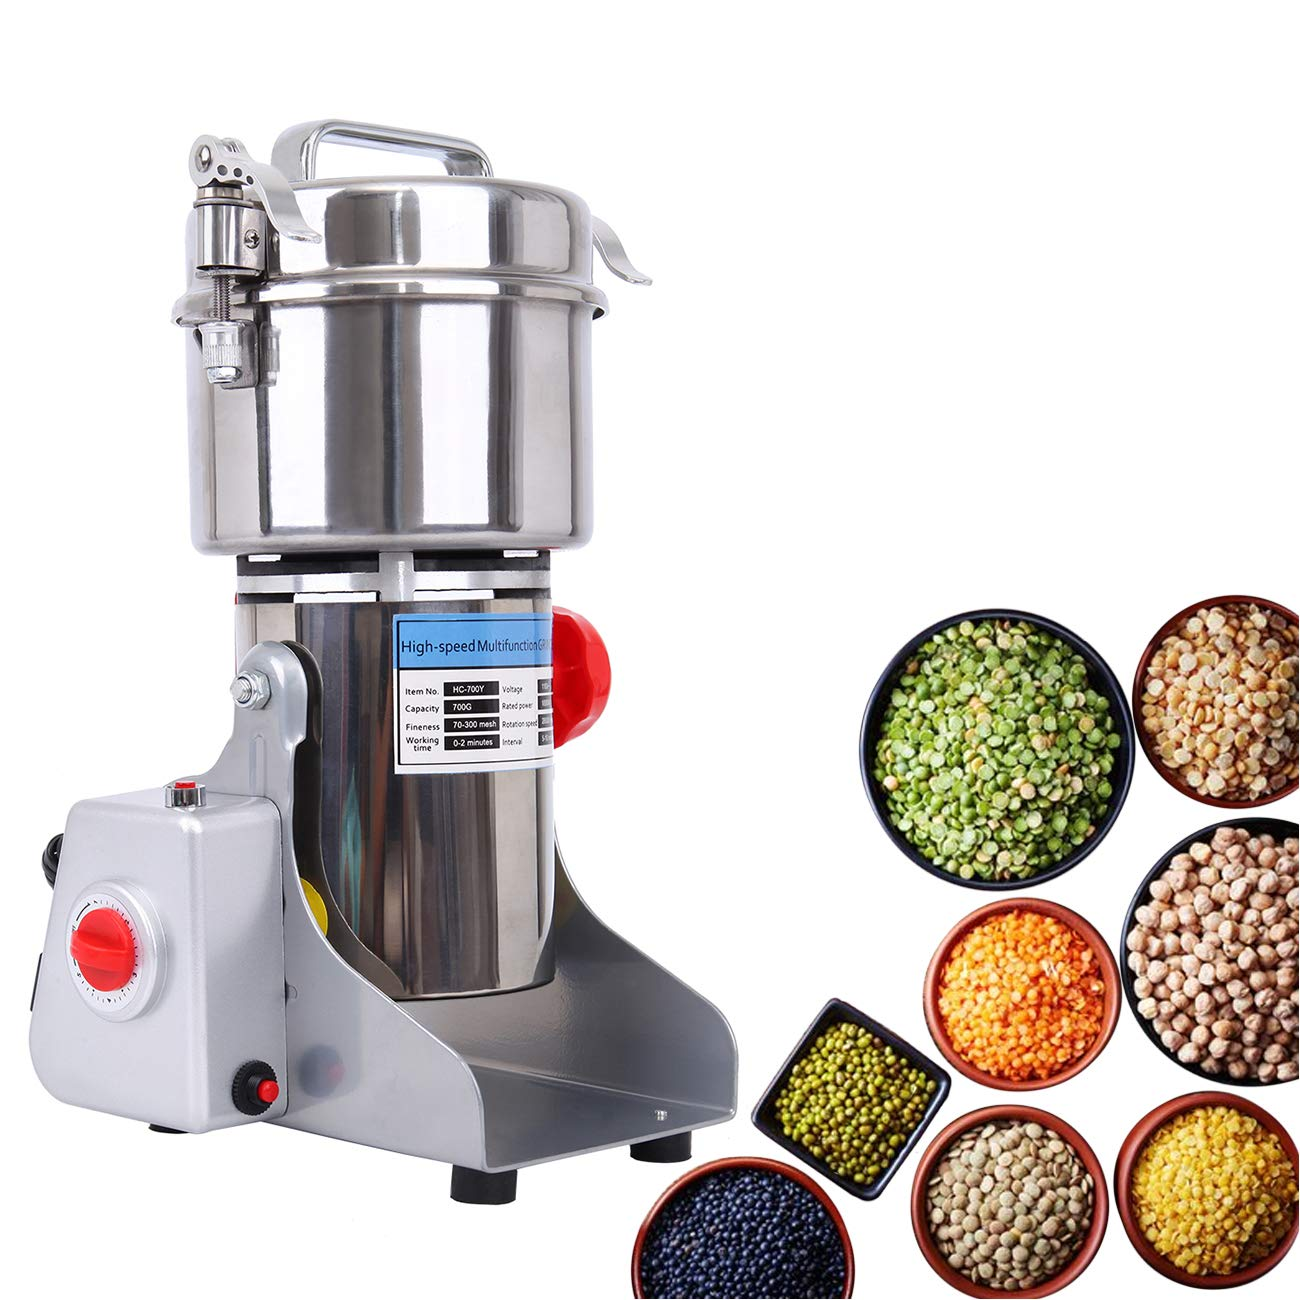 TryE 700g Pulverizer Grinding Machine Electric Grain Grinder Powder Machine for Coffee Herb Spice Pepper by TryE